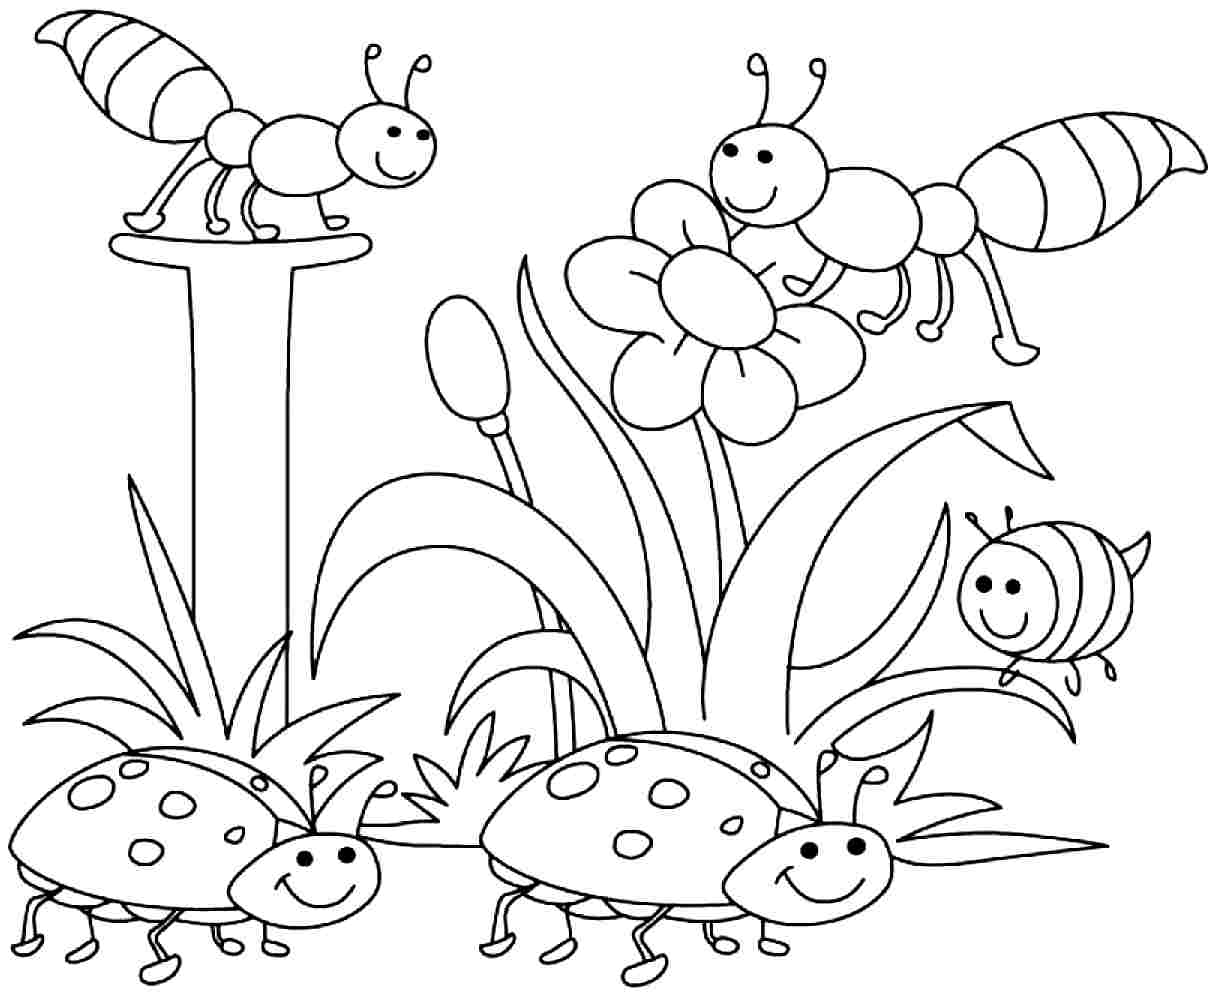 5 Best Images Of Spring Season Coloring Pages Printable